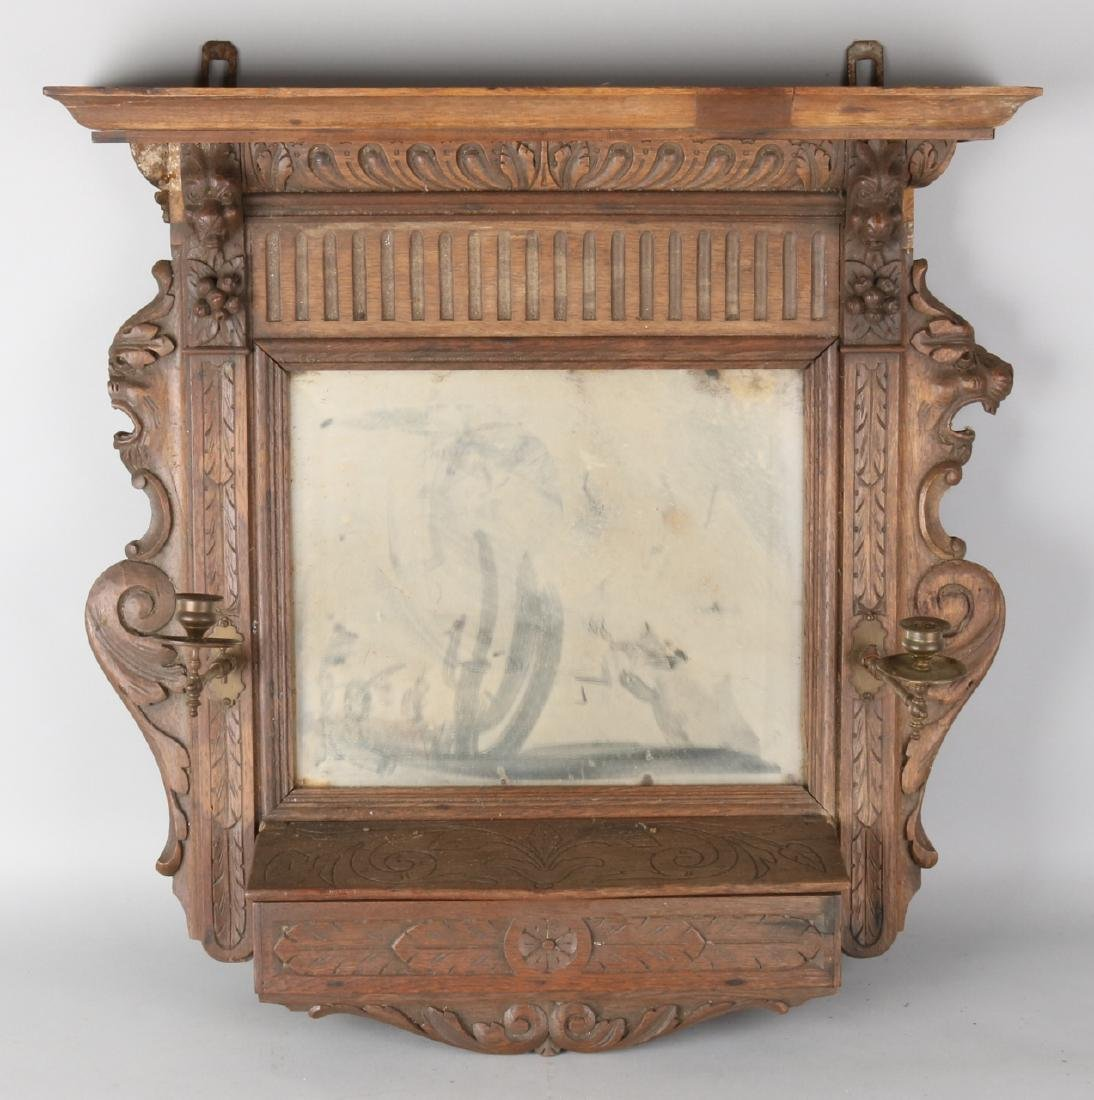 19th Century Malines oak wall mirror with cut glass, copper candlesticks and cam